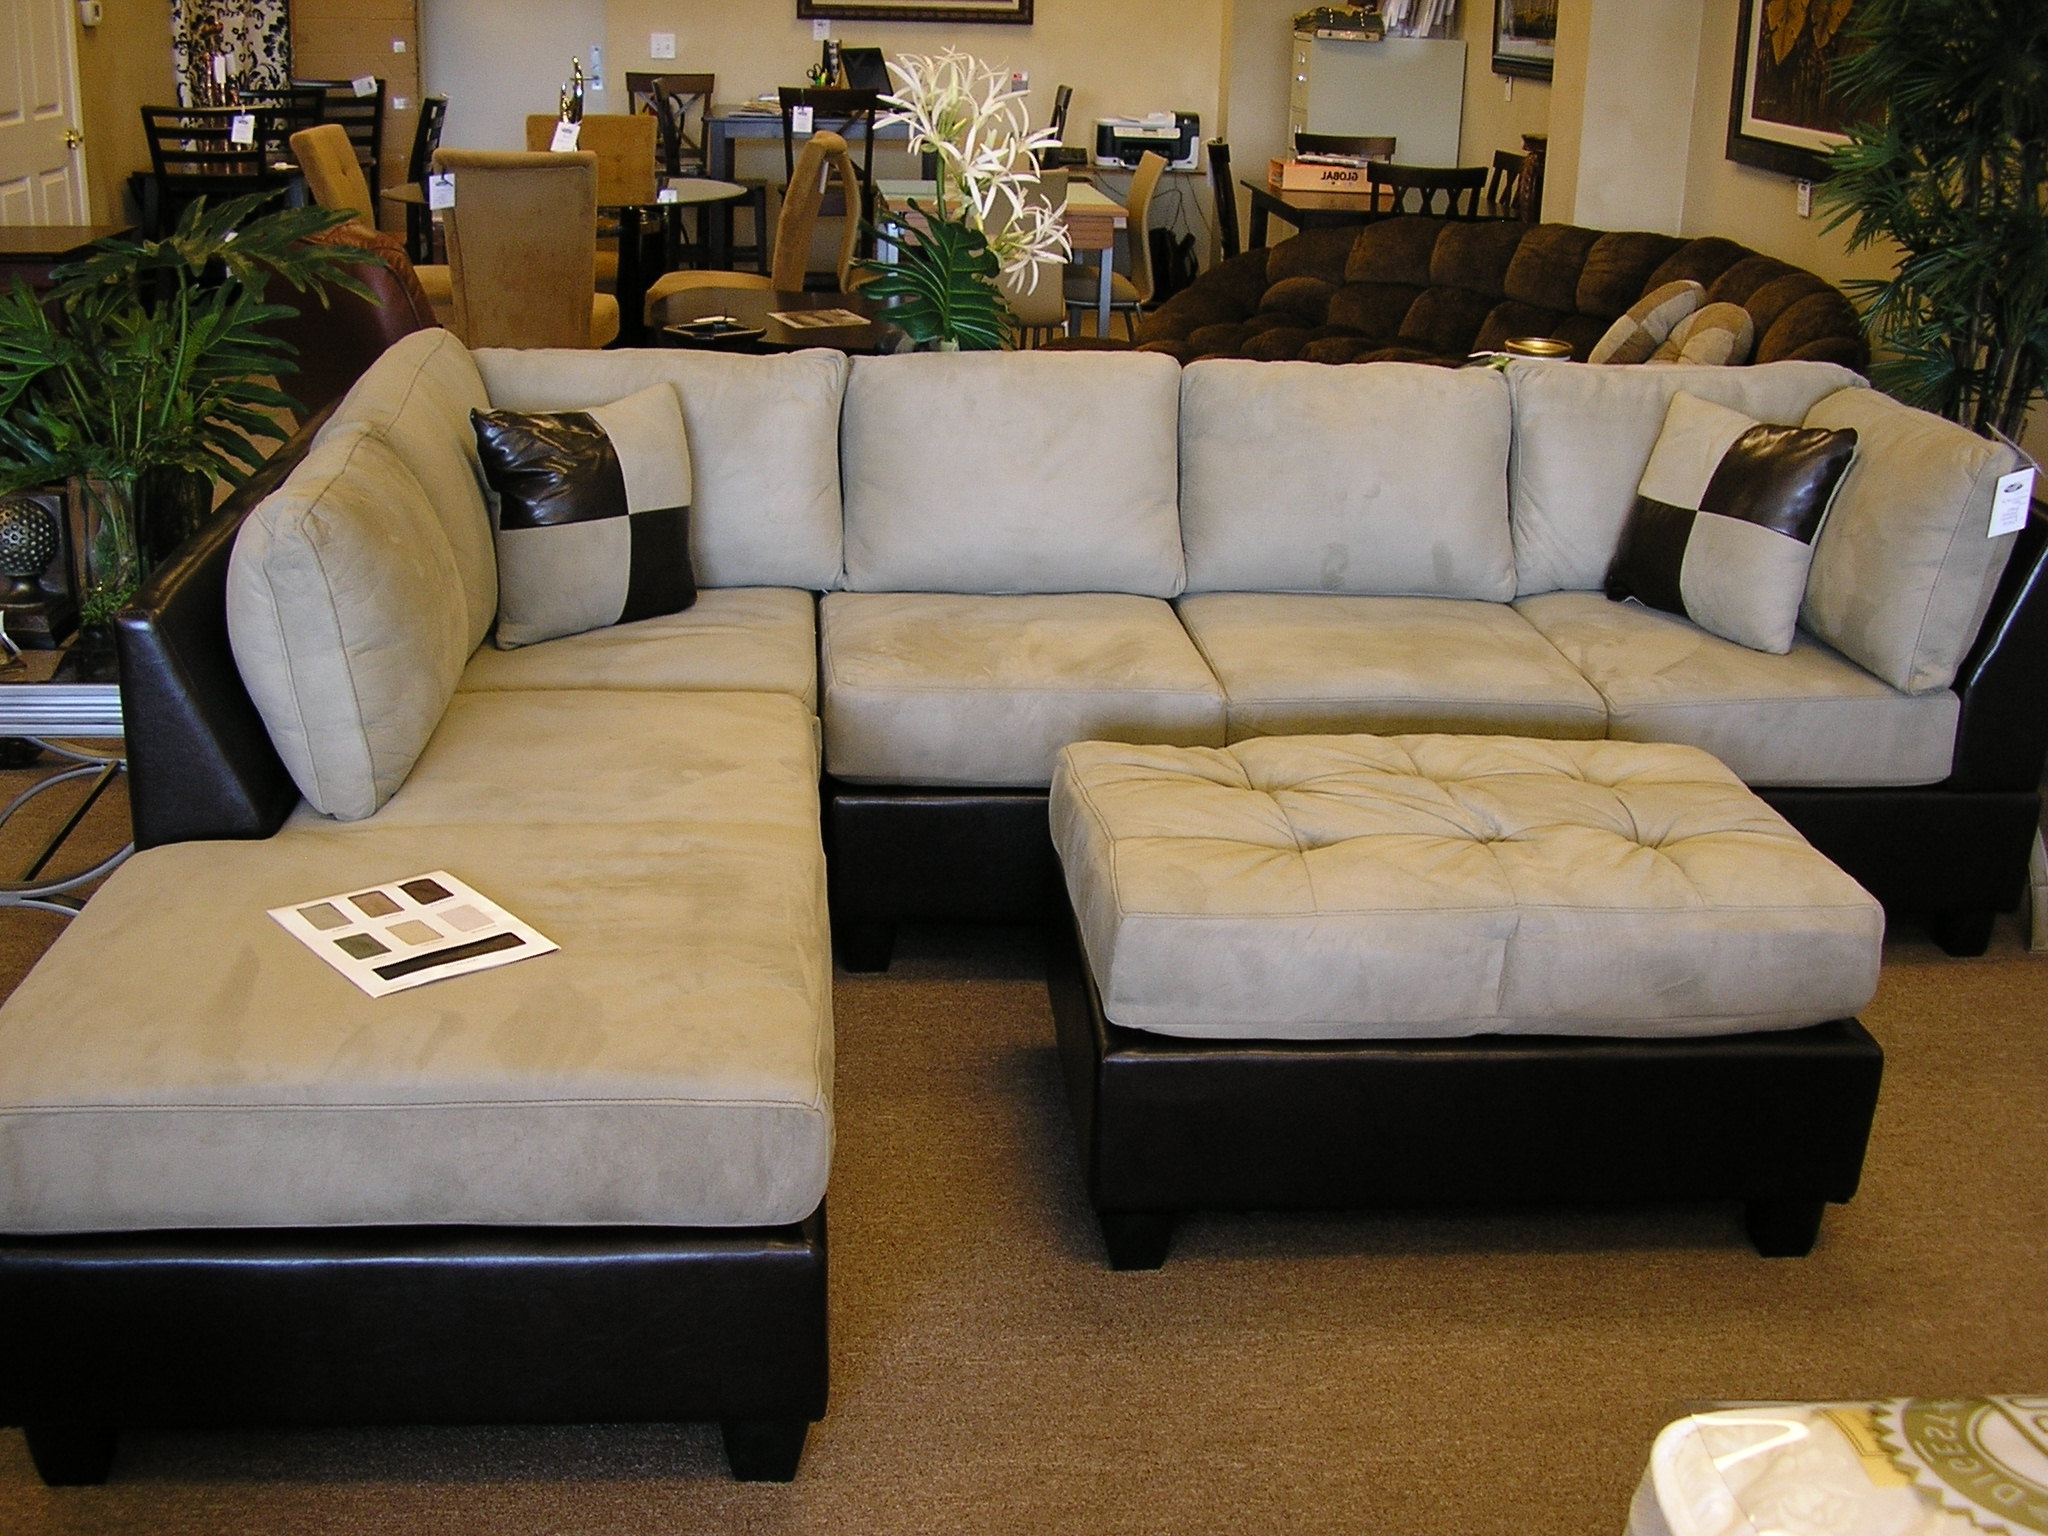 Sectional Sleeper Sofas With Ottoman Within Newest Furniture : Sectional Chaise Lounge Sofa Double Along With (View 15 of 15)